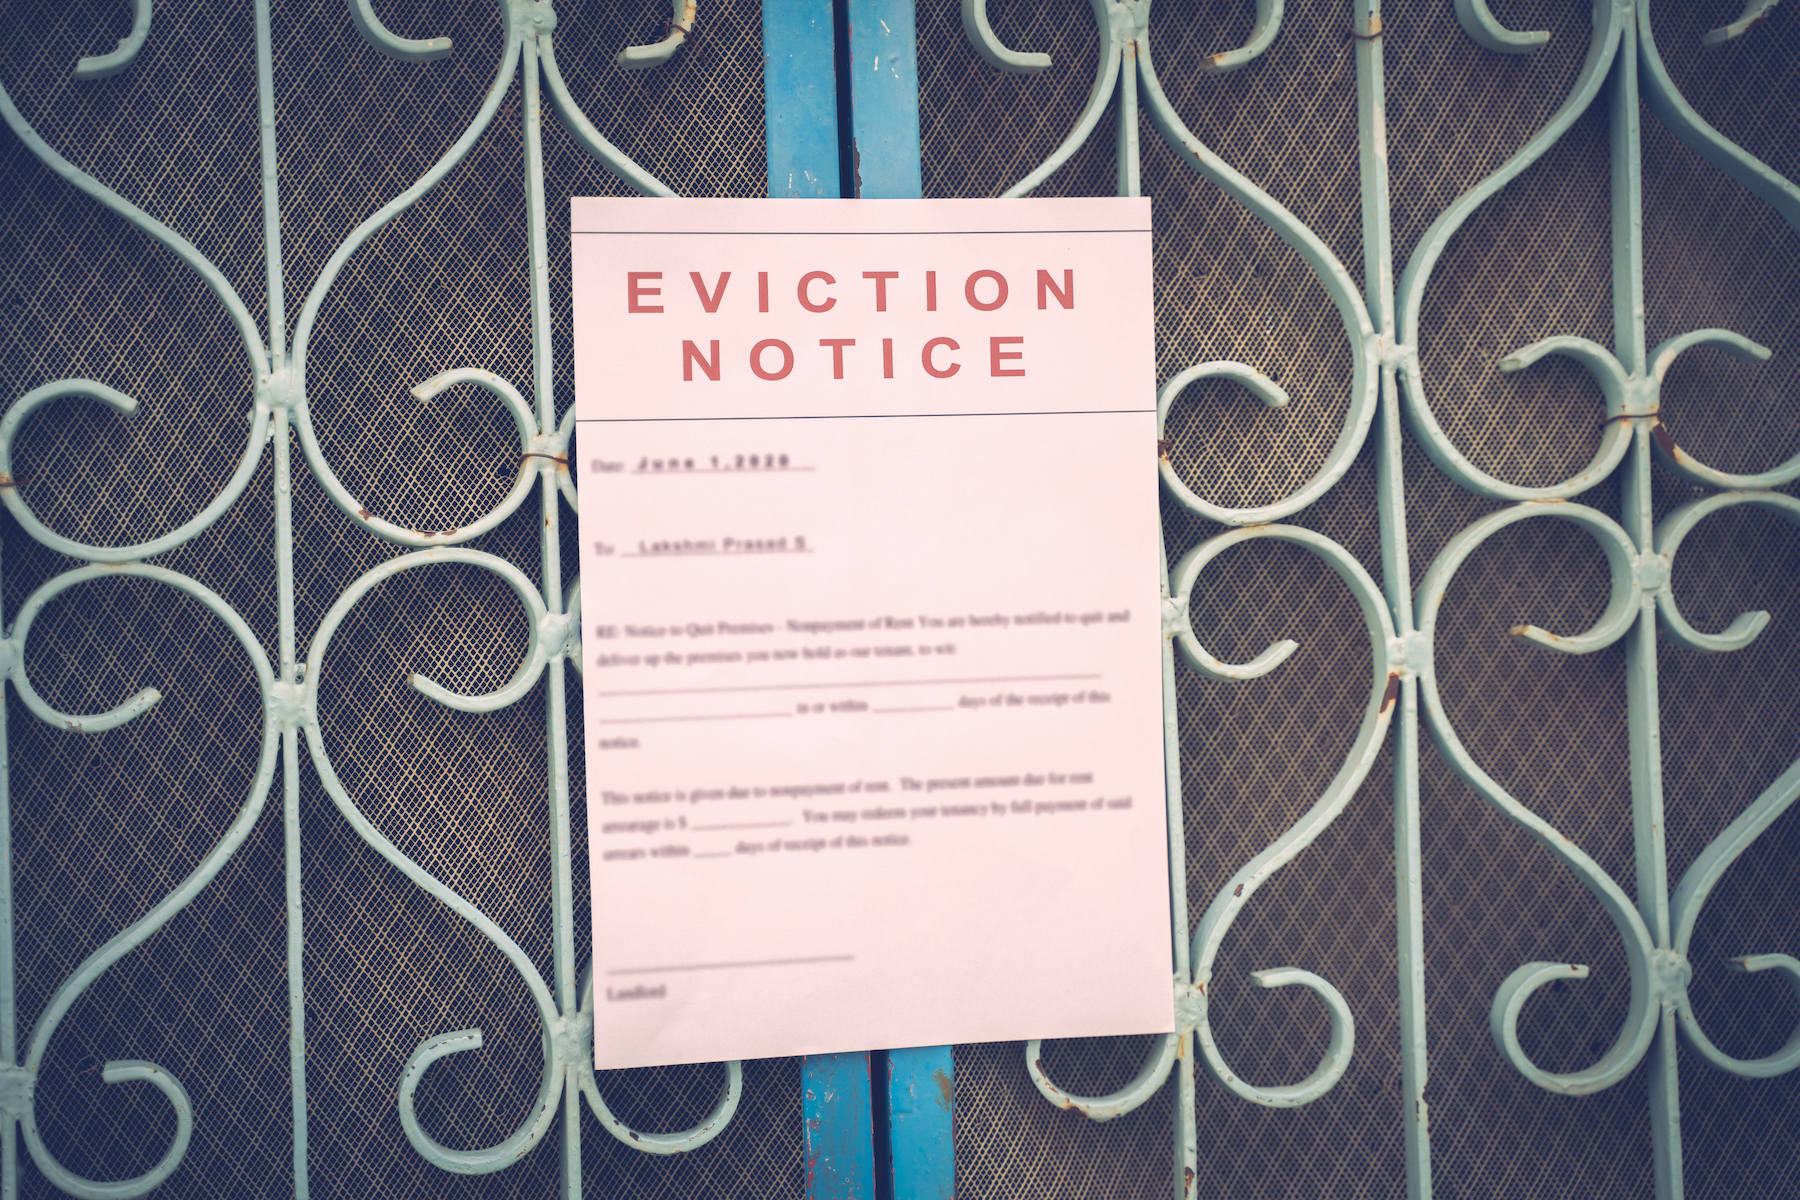 A stock image of an eviction notice